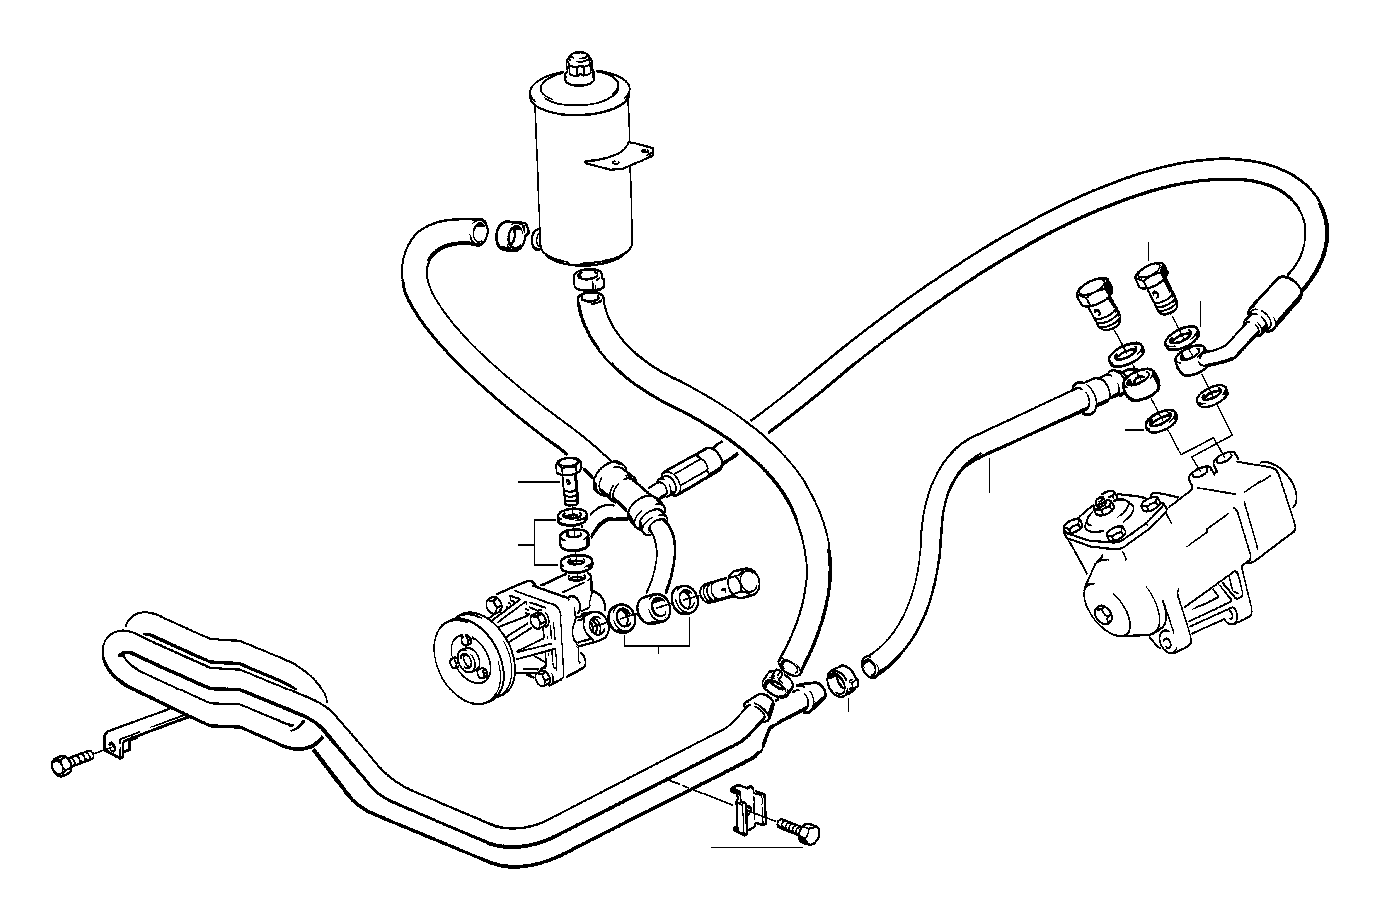 bmw 325i gasket ring  a16x20-cusn  steering  oil  lines